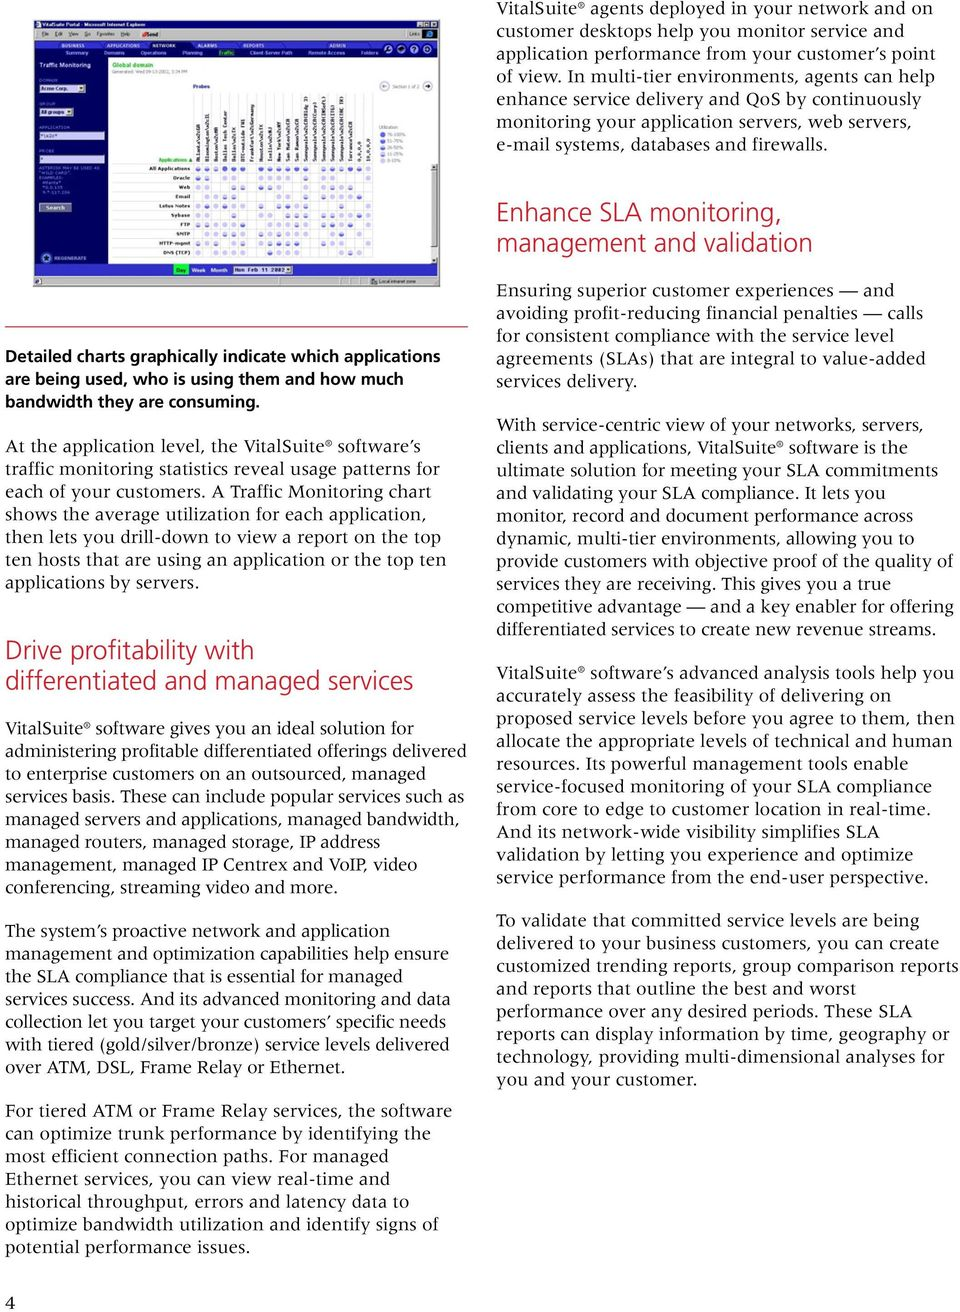 Enhance SLA monitoring, management and validation Detailed charts graphically indicate which applications are being used, who is using them and how much bandwidth they are consuming.